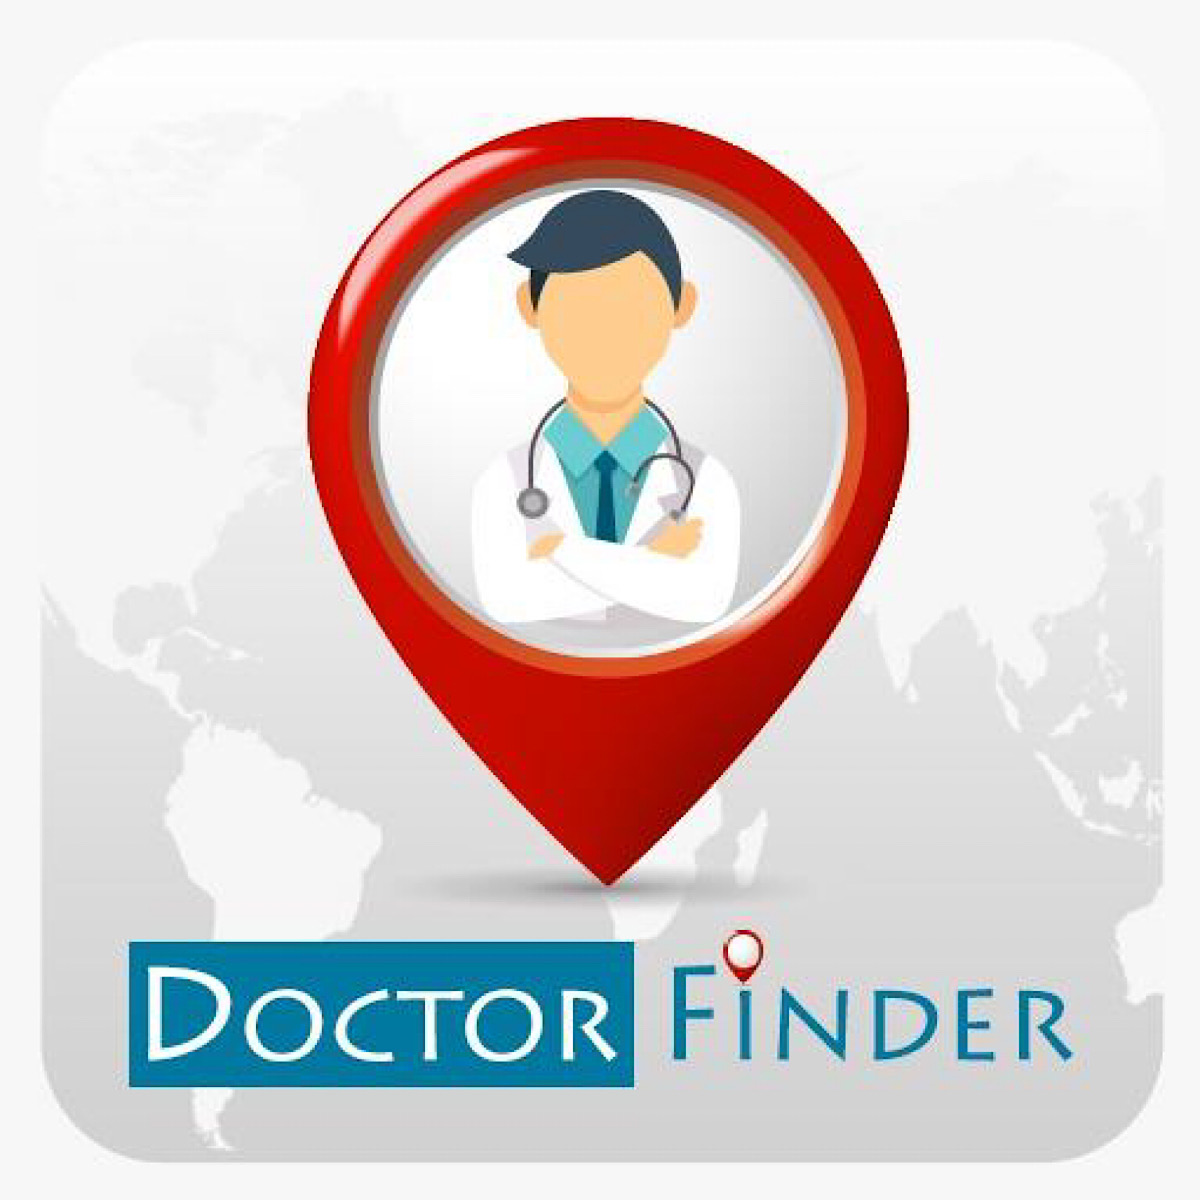 Yext Launches AI-Powered Doctor Finder Solution To Make Searching For Healthcare Providers A Seamless Experience